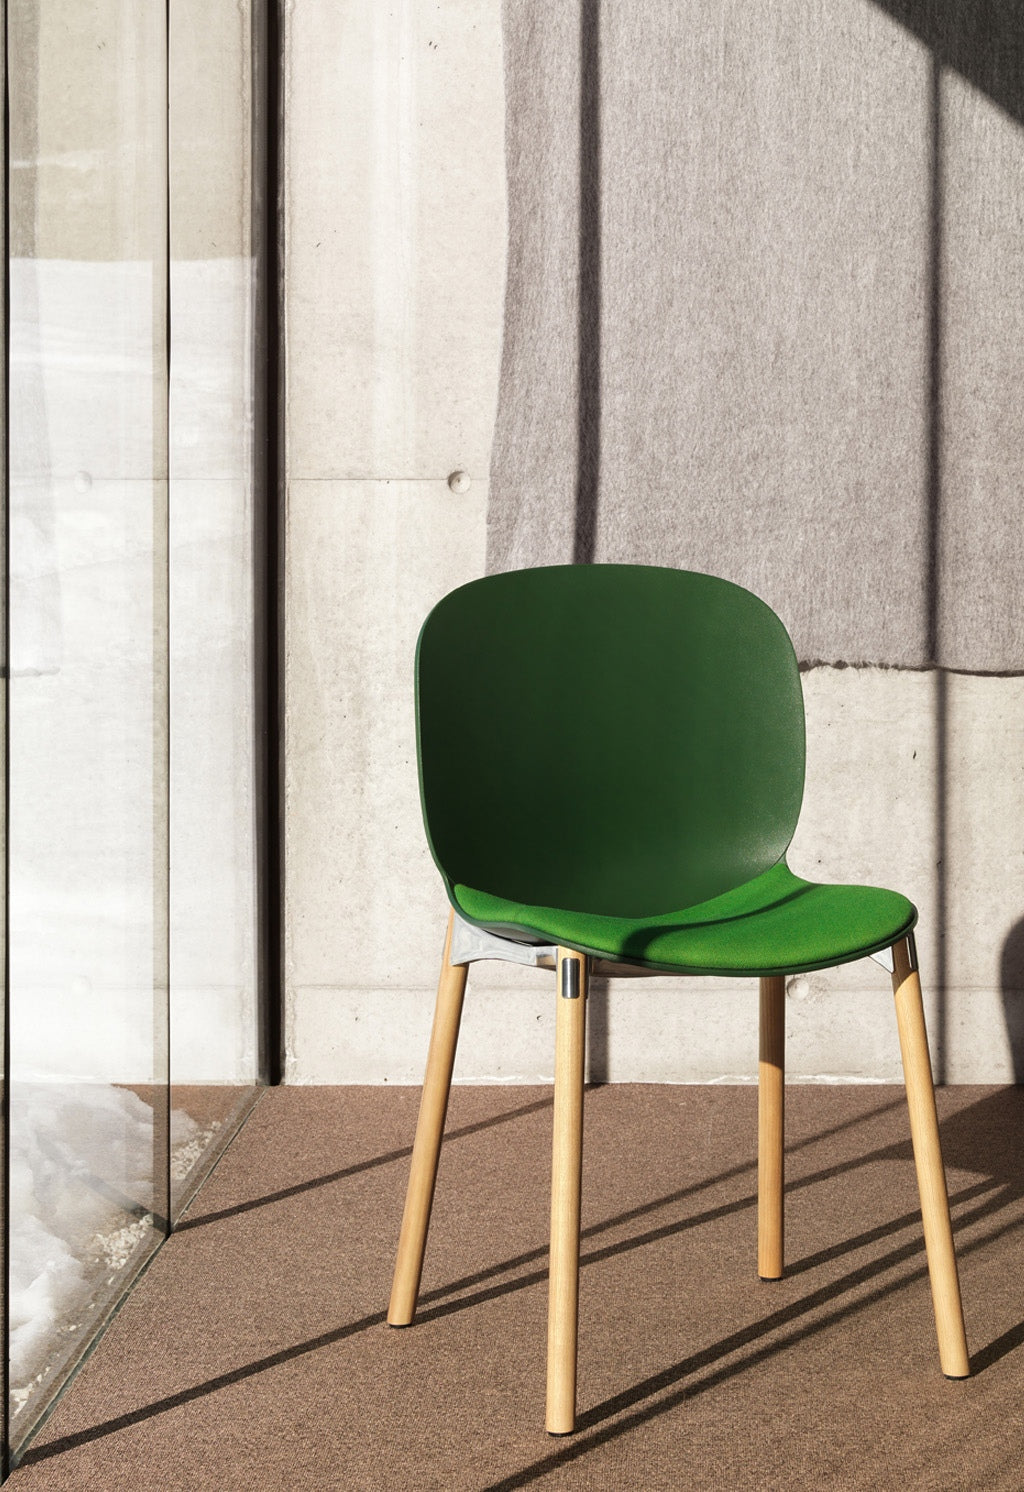 Flokk RBM Noor 6080 Wood Leg Chair